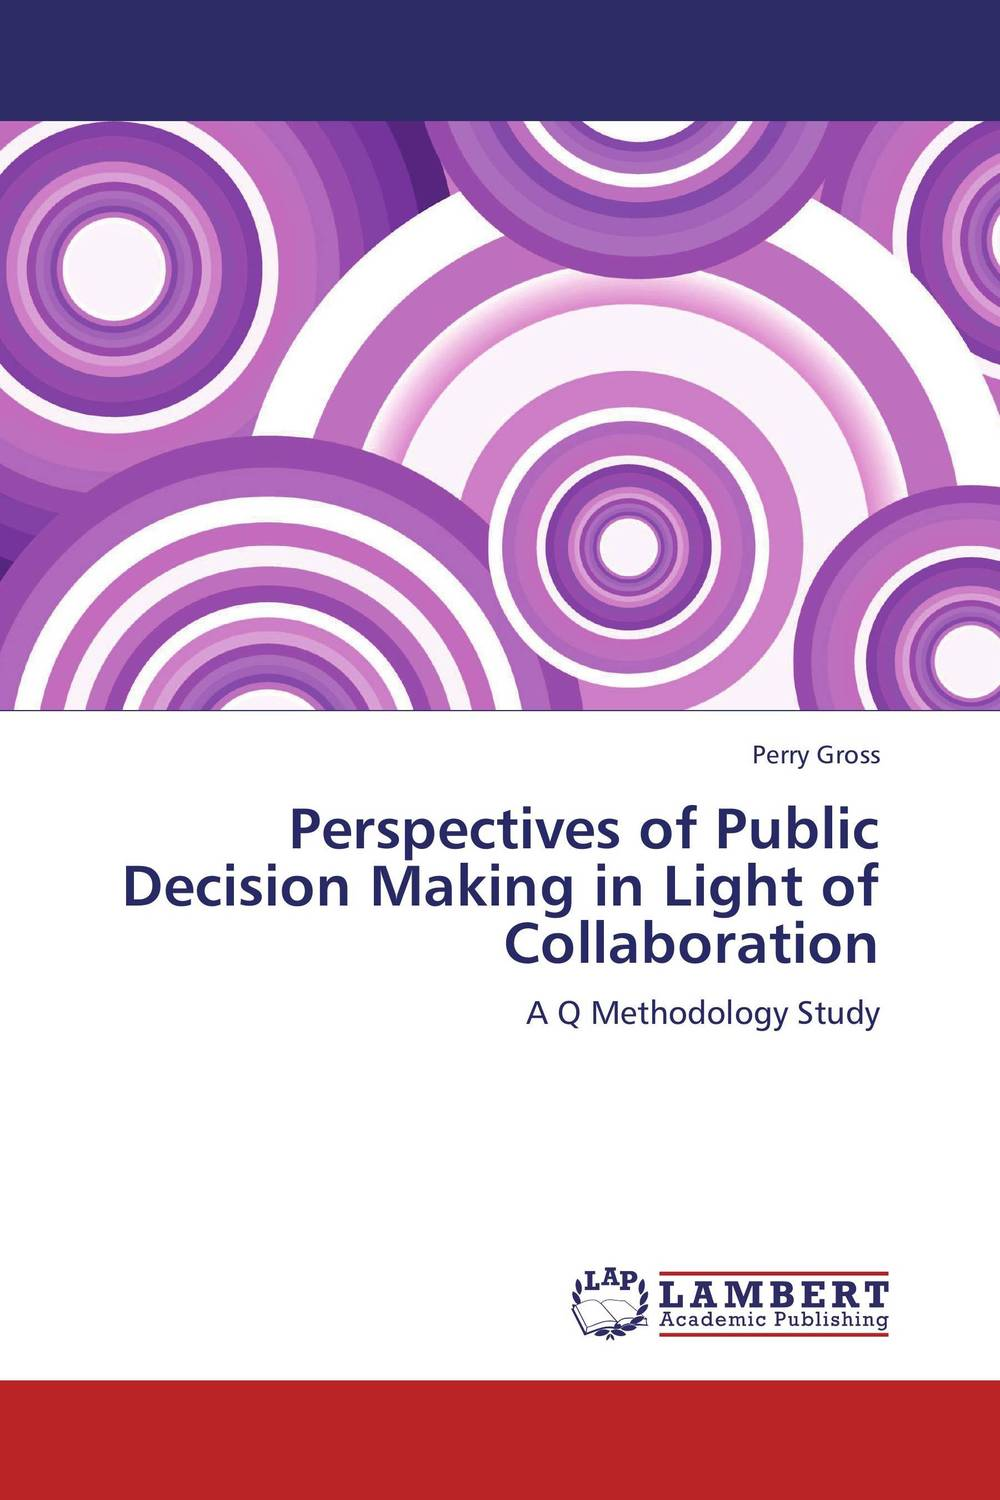 Perspectives of Public Decision Making in Light of Collaboration alan roxburgh missional map making skills for leading in times of transition